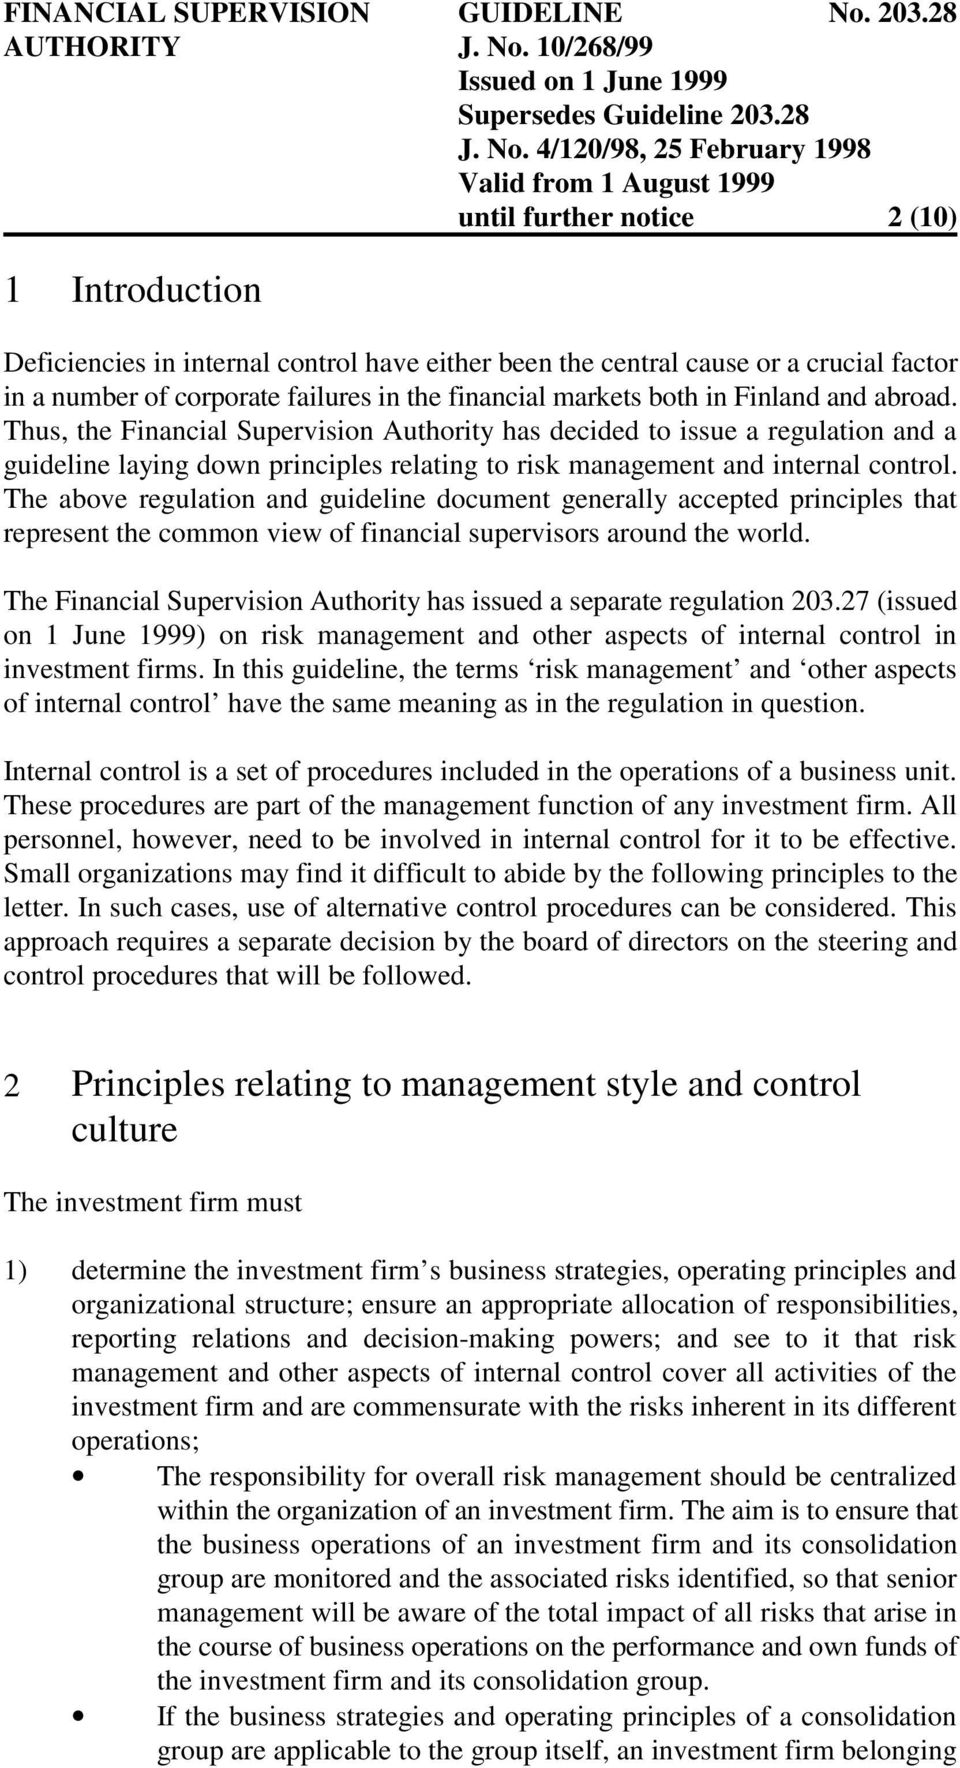 The above regulation and guideline document generally accepted principles that represent the common view of financial supervisors around the world.